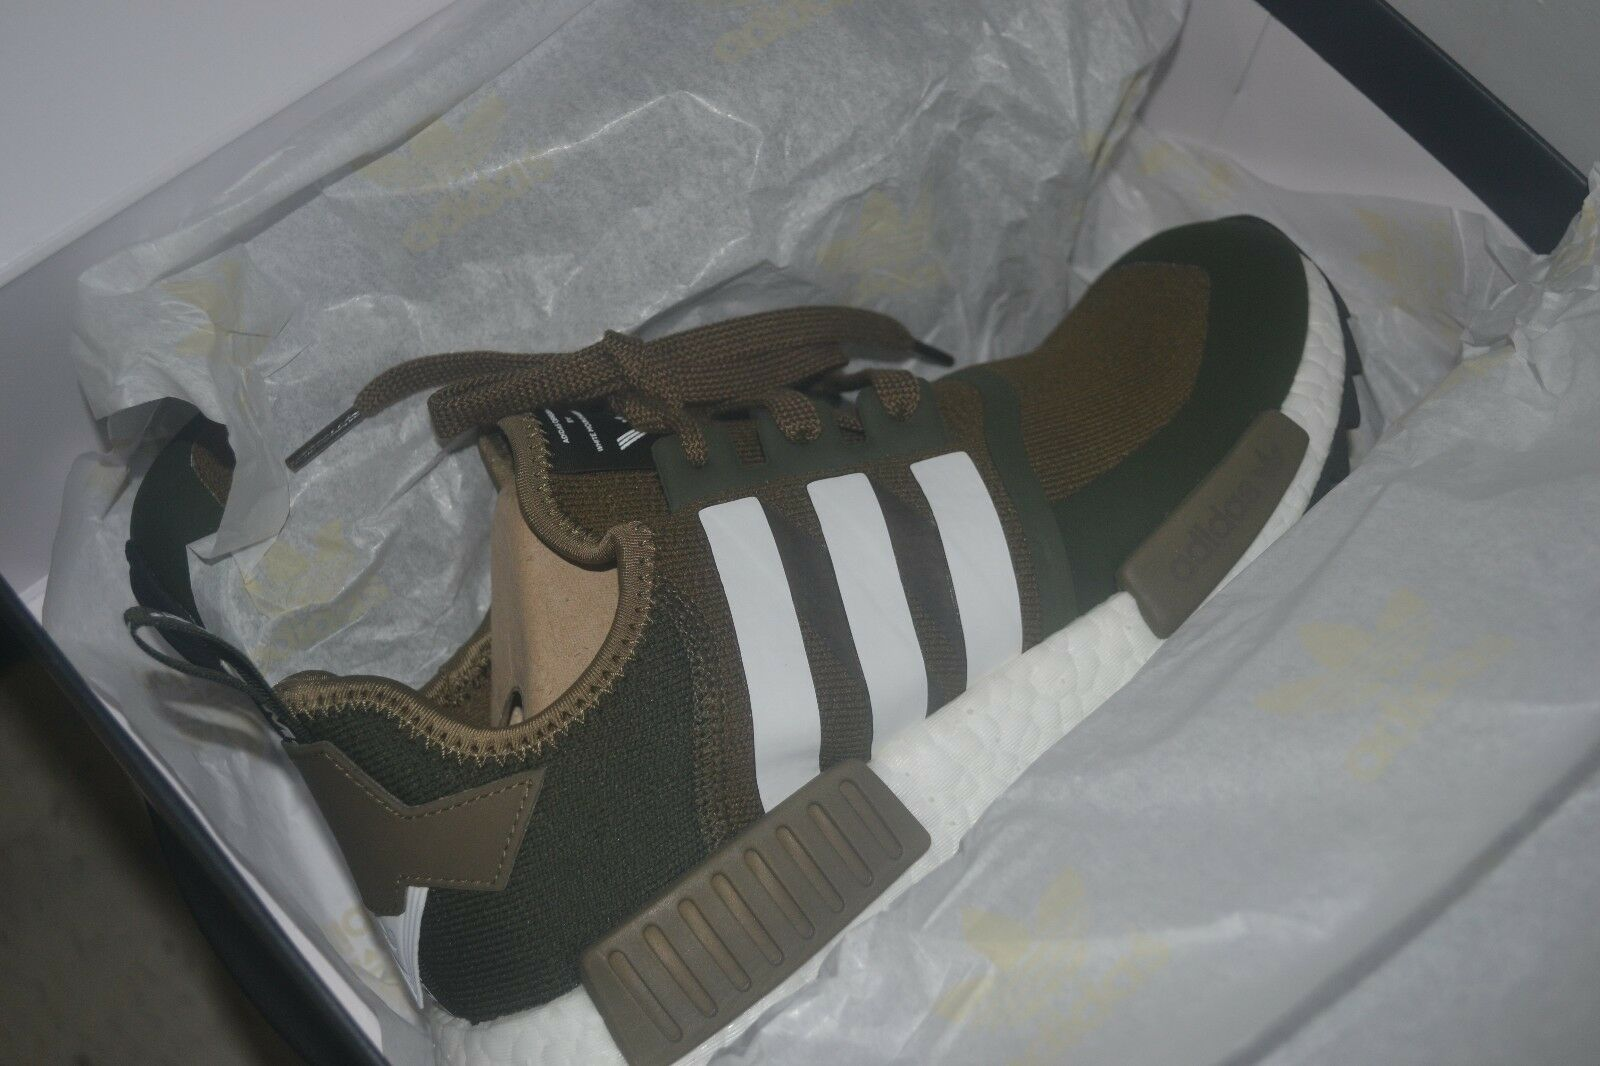 finest selection eee75 9fd7a ... ADIDAS NMD TRAIL PK PRIMEKNIT WHITE MOUNTAINEERING TRACE OLIVE R1 R1 R1  CG3647 WOMN9.5 ...